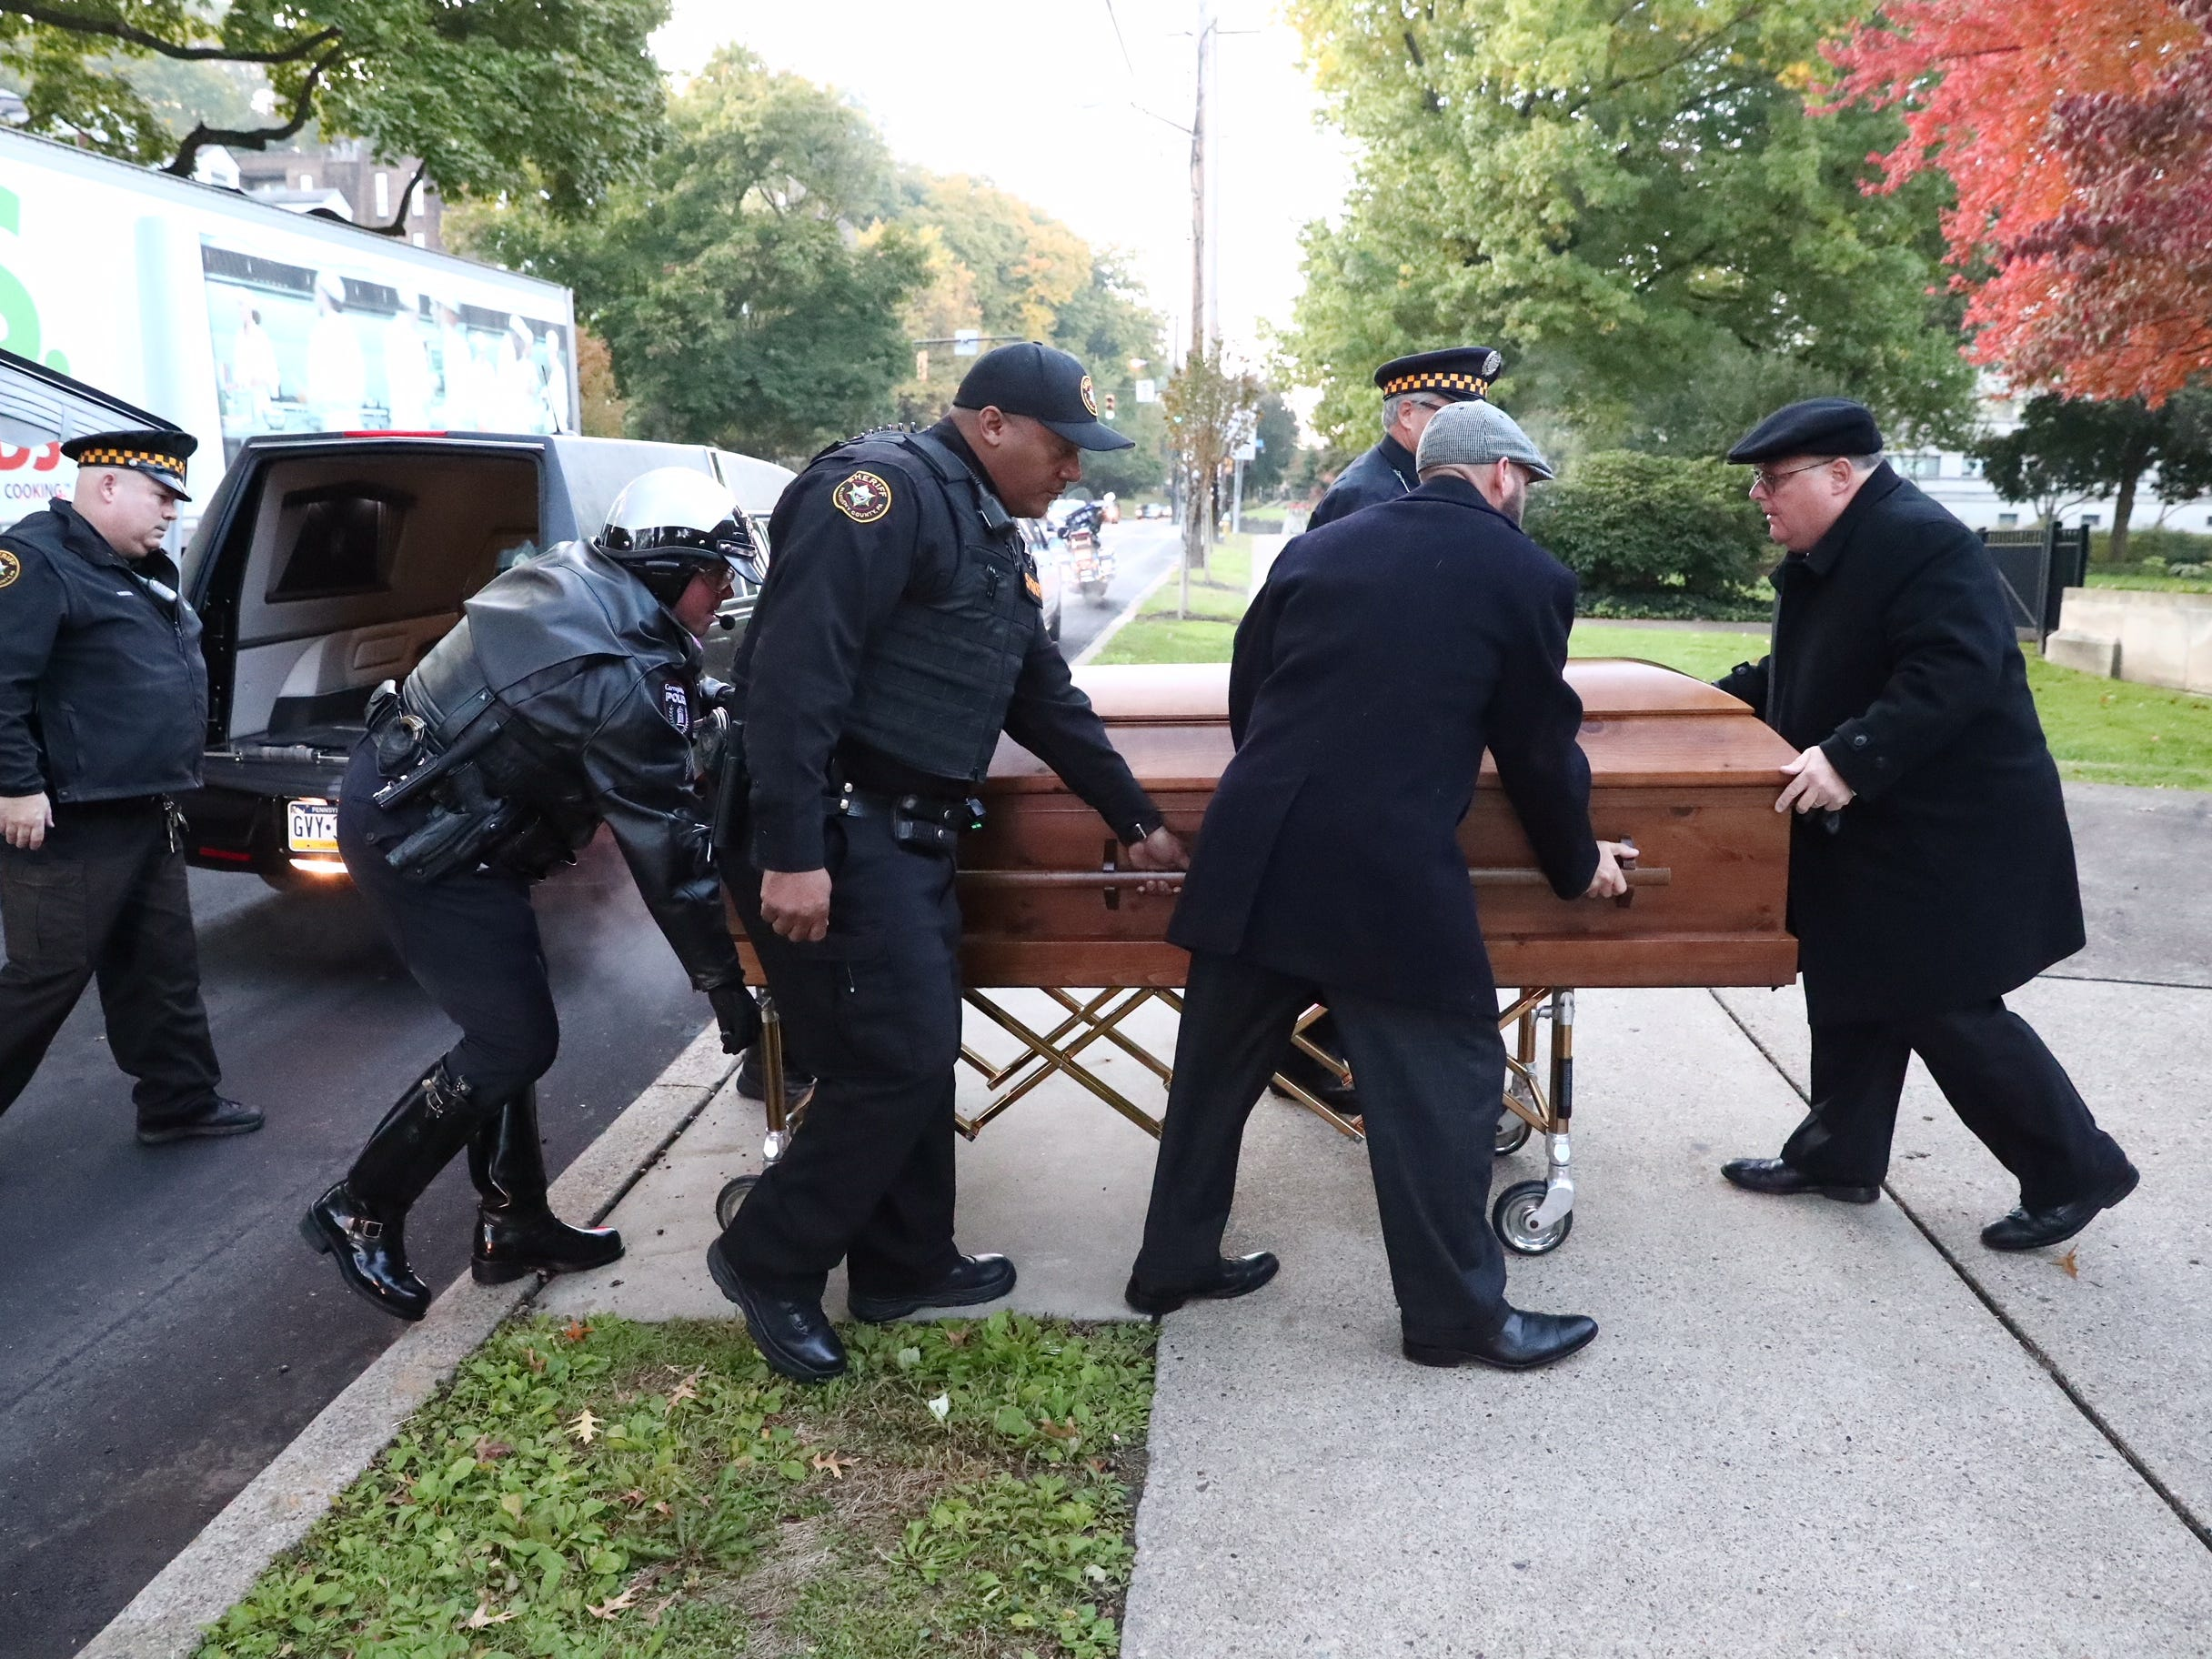 One of the caskets for brothers David and Cecil Rosenthal arrives at Rodef Shalom Synagogue, Tuesday, Oct. 30, 2018, in Pittsburgh.